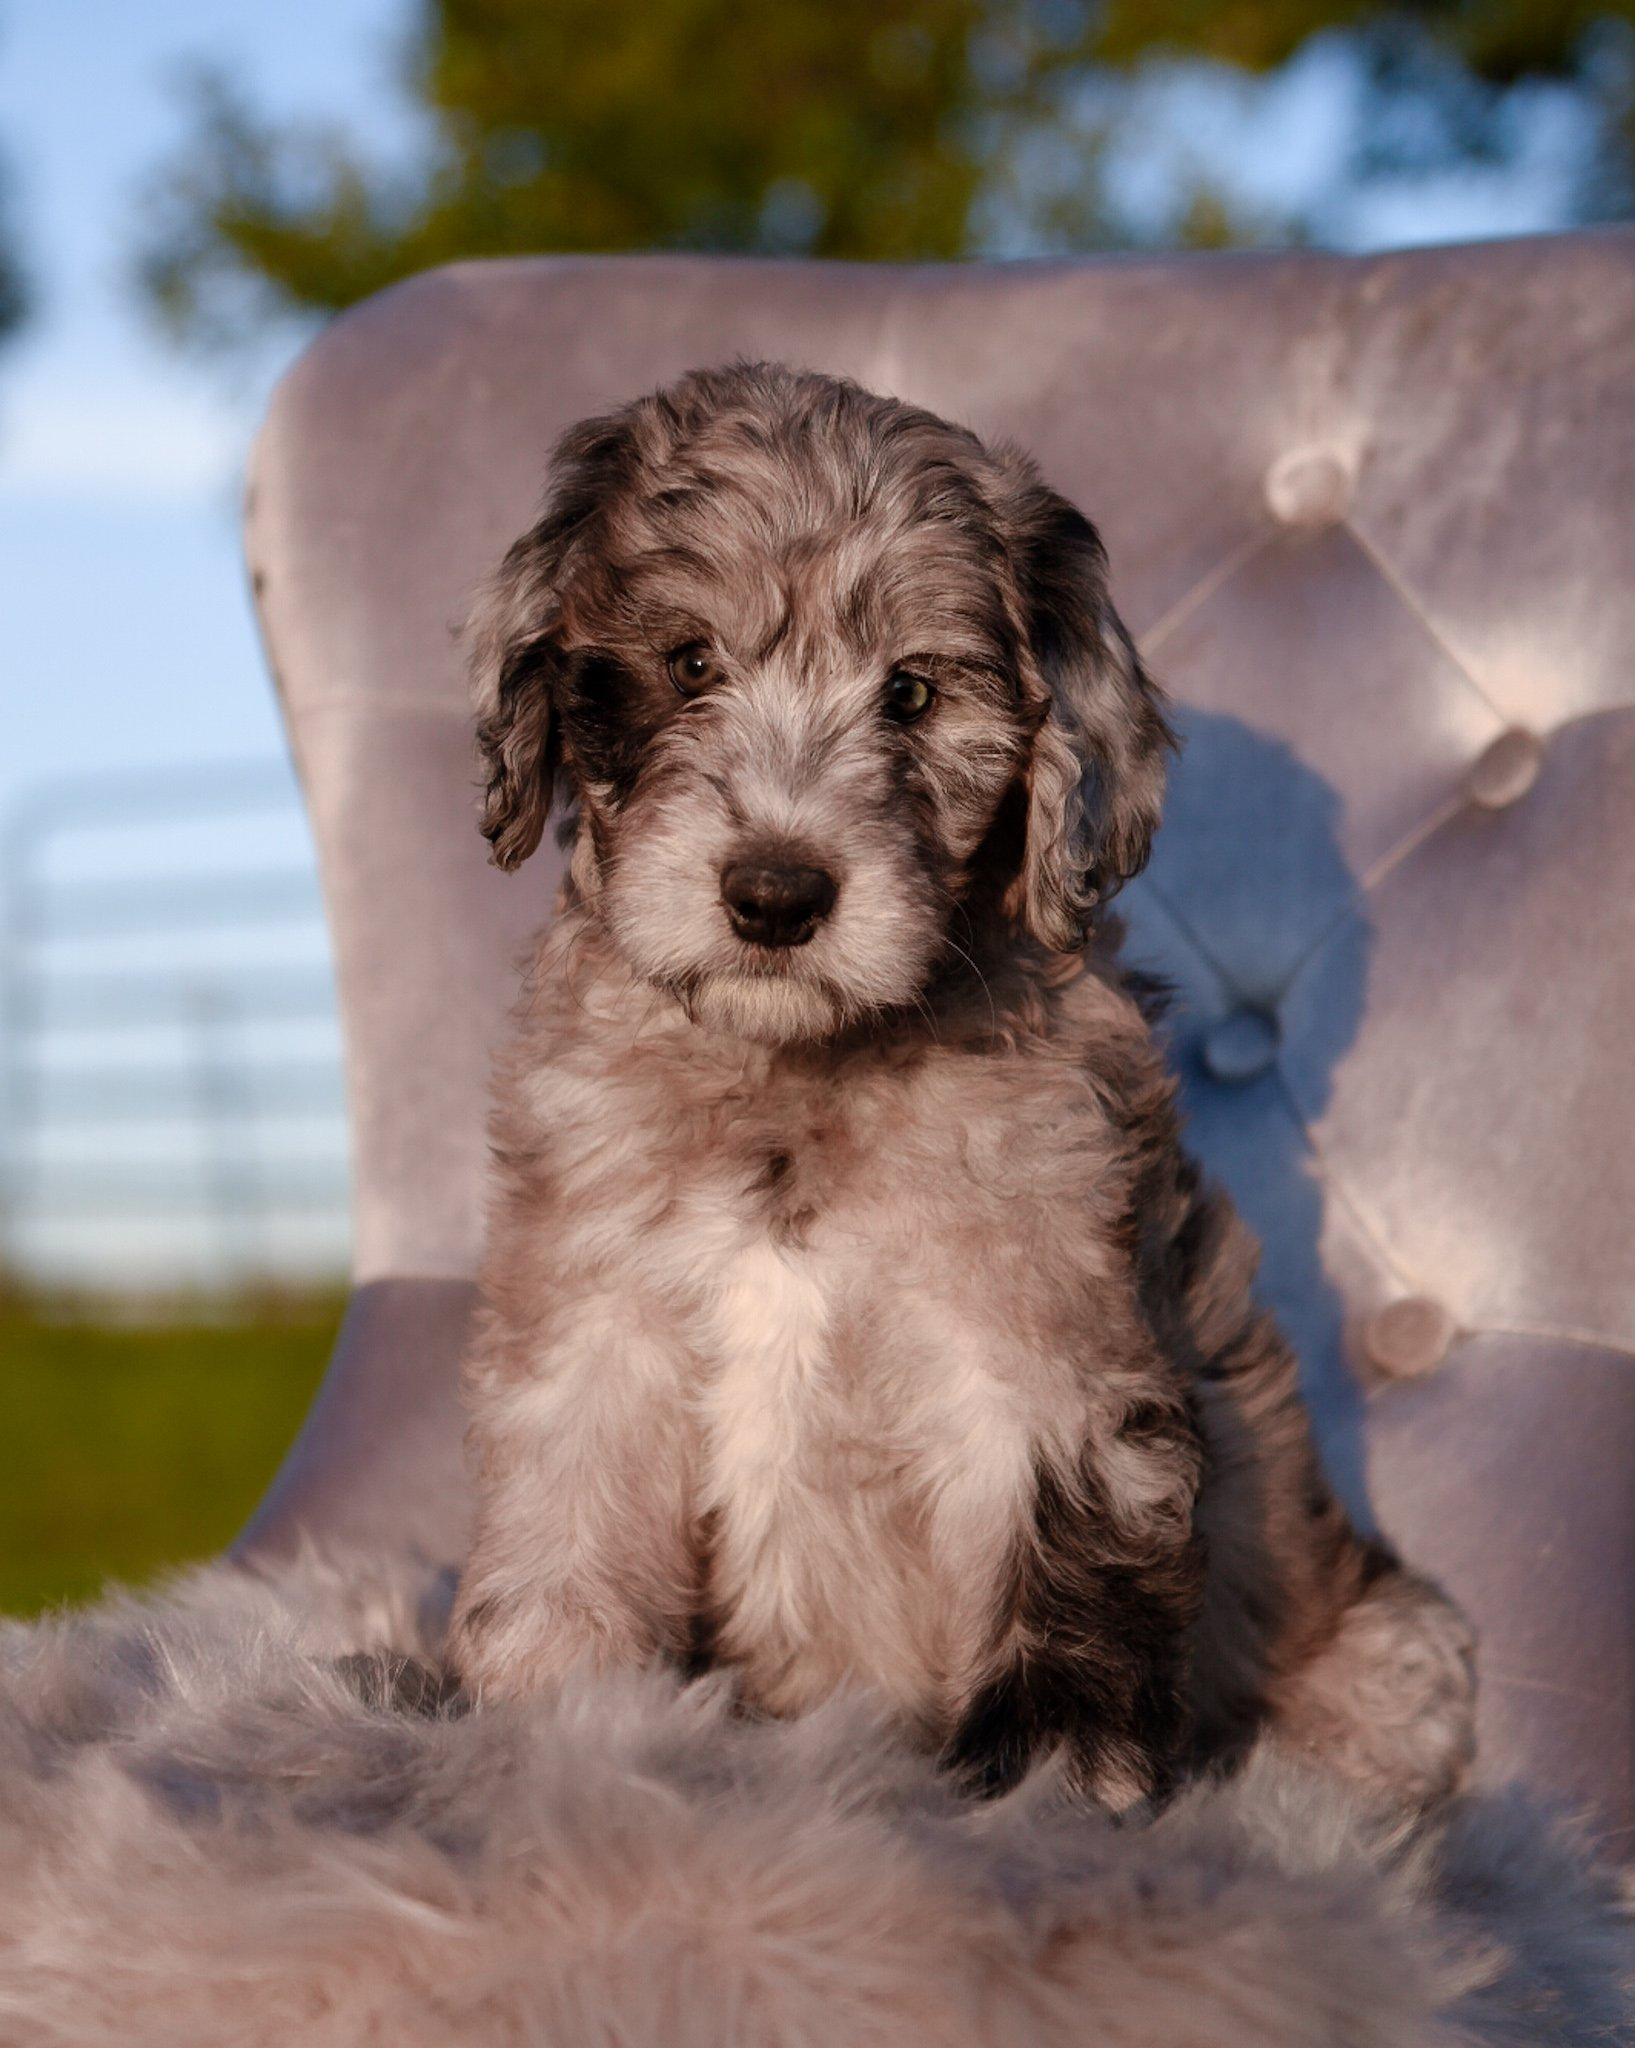 A blue merle Bordoodle puppy sitting on a blue chair outside in the summer.